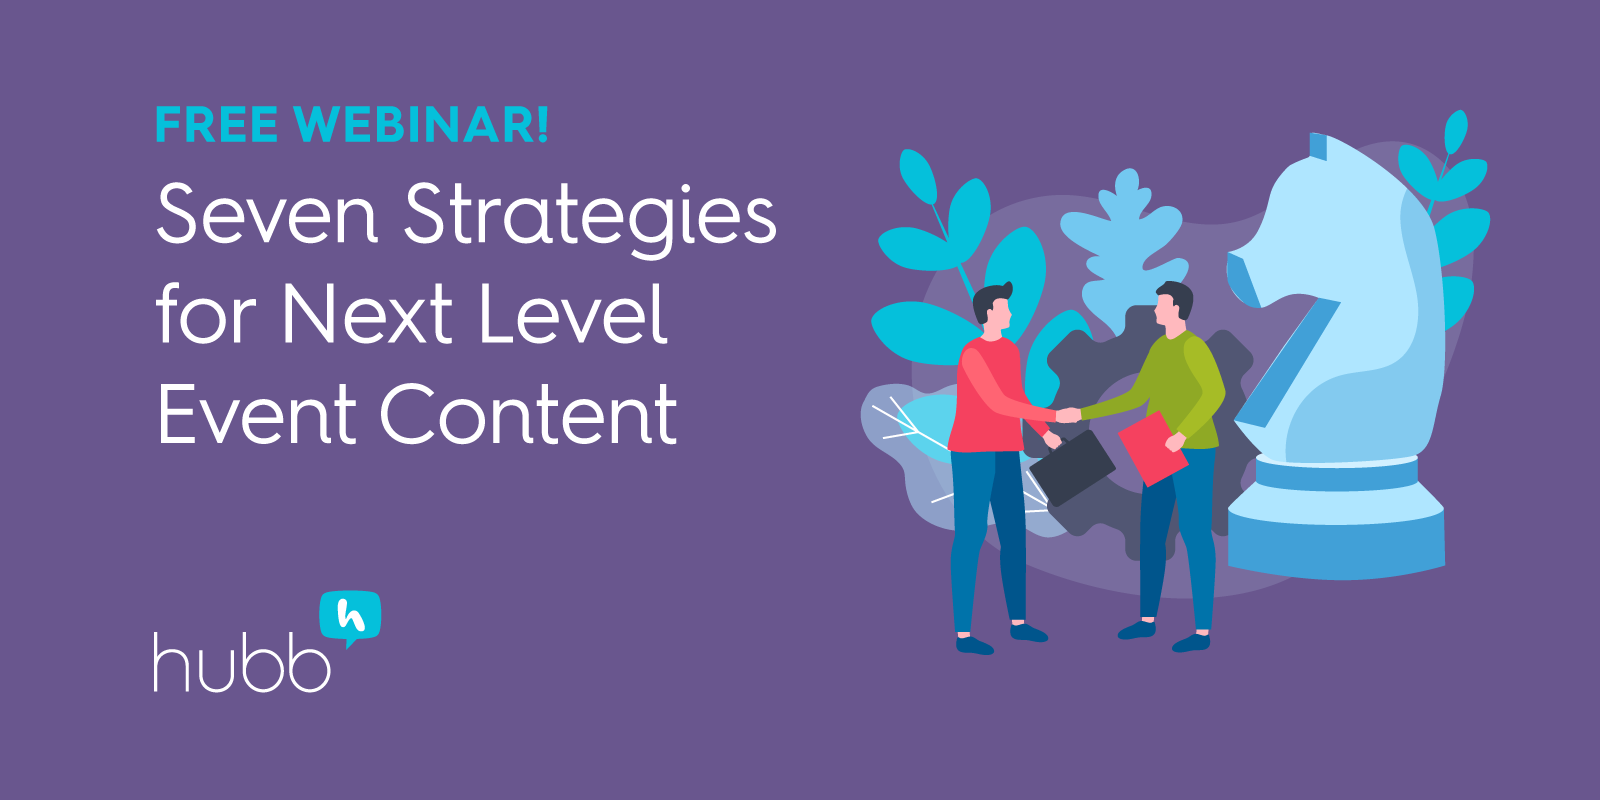 [Webinar] Seven Strategies for Next Level Content